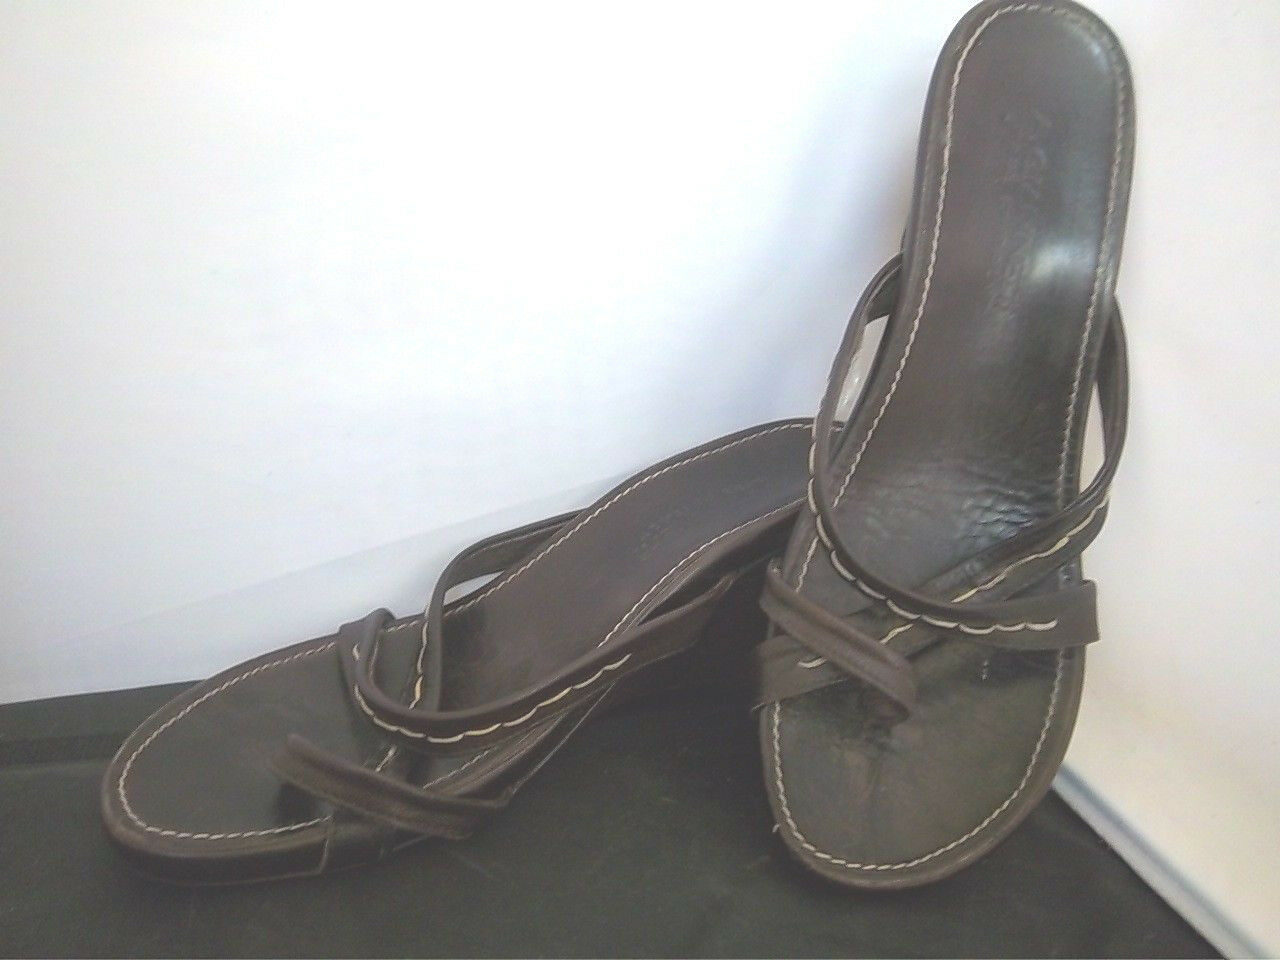 A.GIANNETTI-Women's Brown Leather Toe Wedge Loop Strappy Slip On Wedge Toe Sandals-SIZE 10 c8fcf7